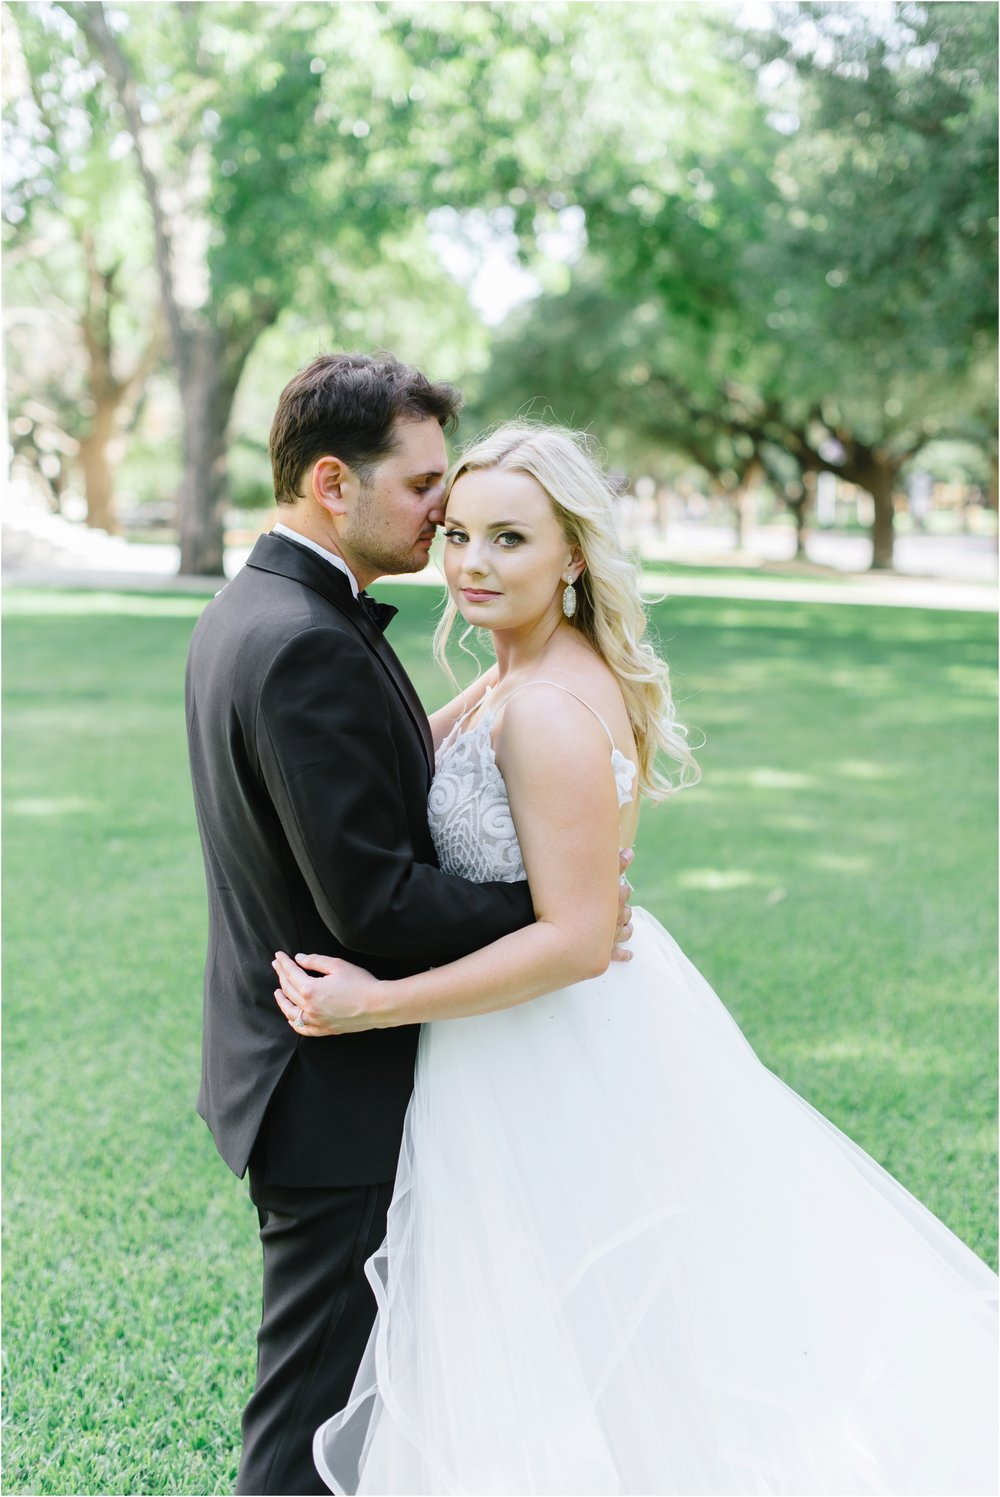 dallasweddingphotographer_fortworthweddingphotographer_texasweddingphotographer_mattandjulieweddings_0012.jpg